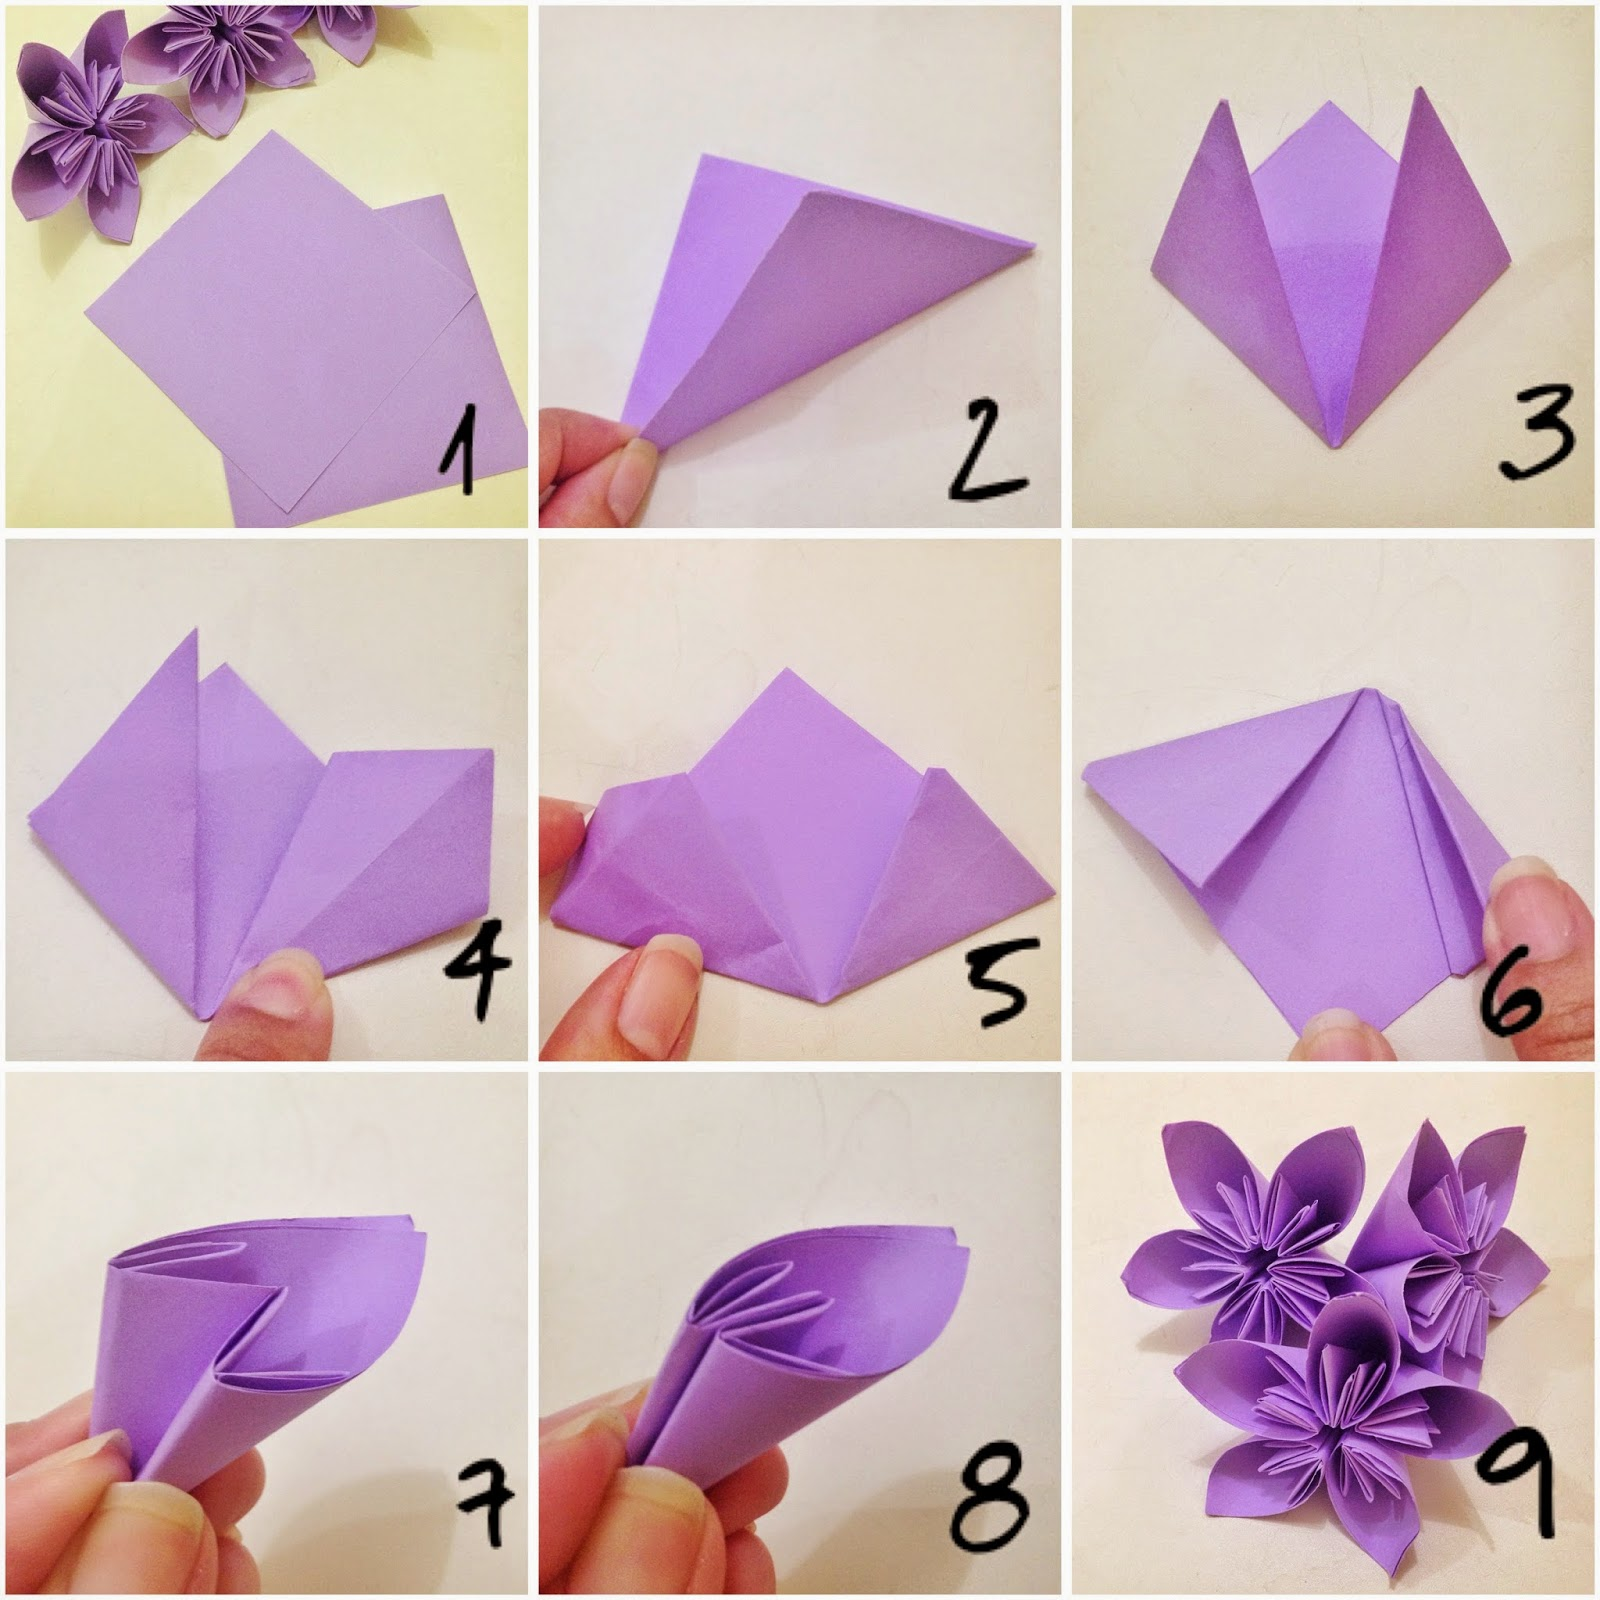 Origami Flower With A4 Paper Vatozozdevelopment